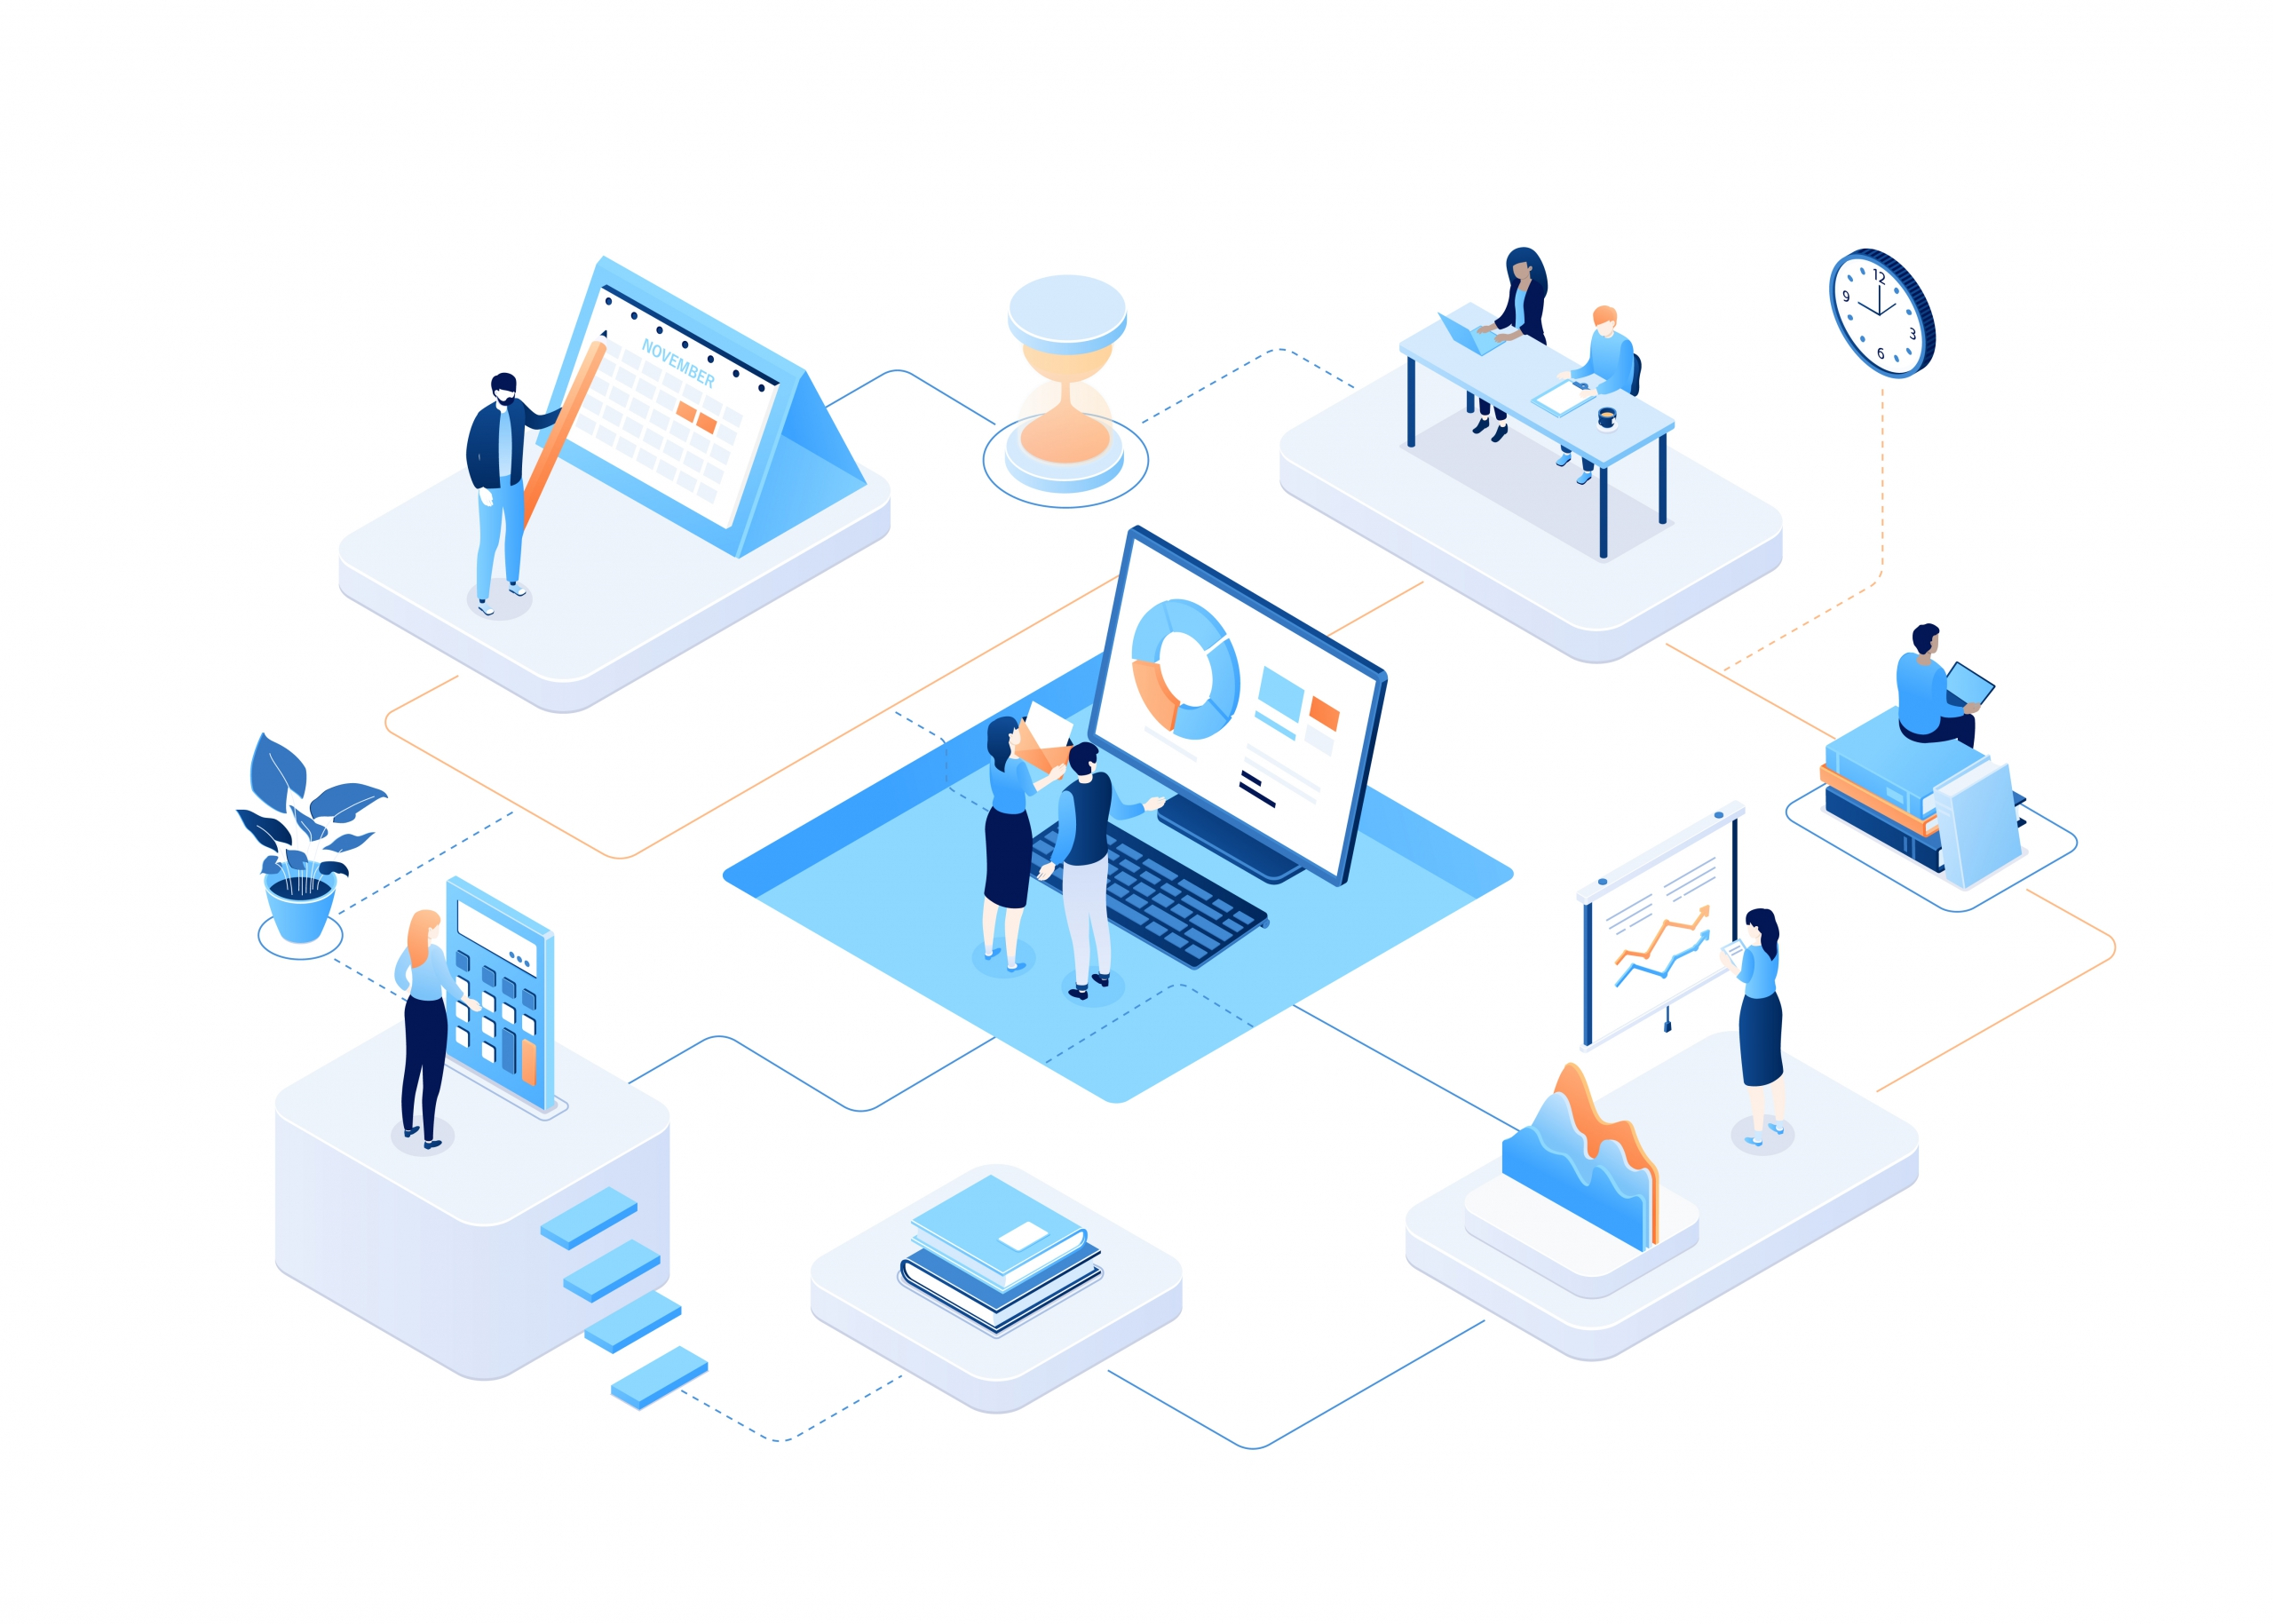 Bringing Data into the workplace